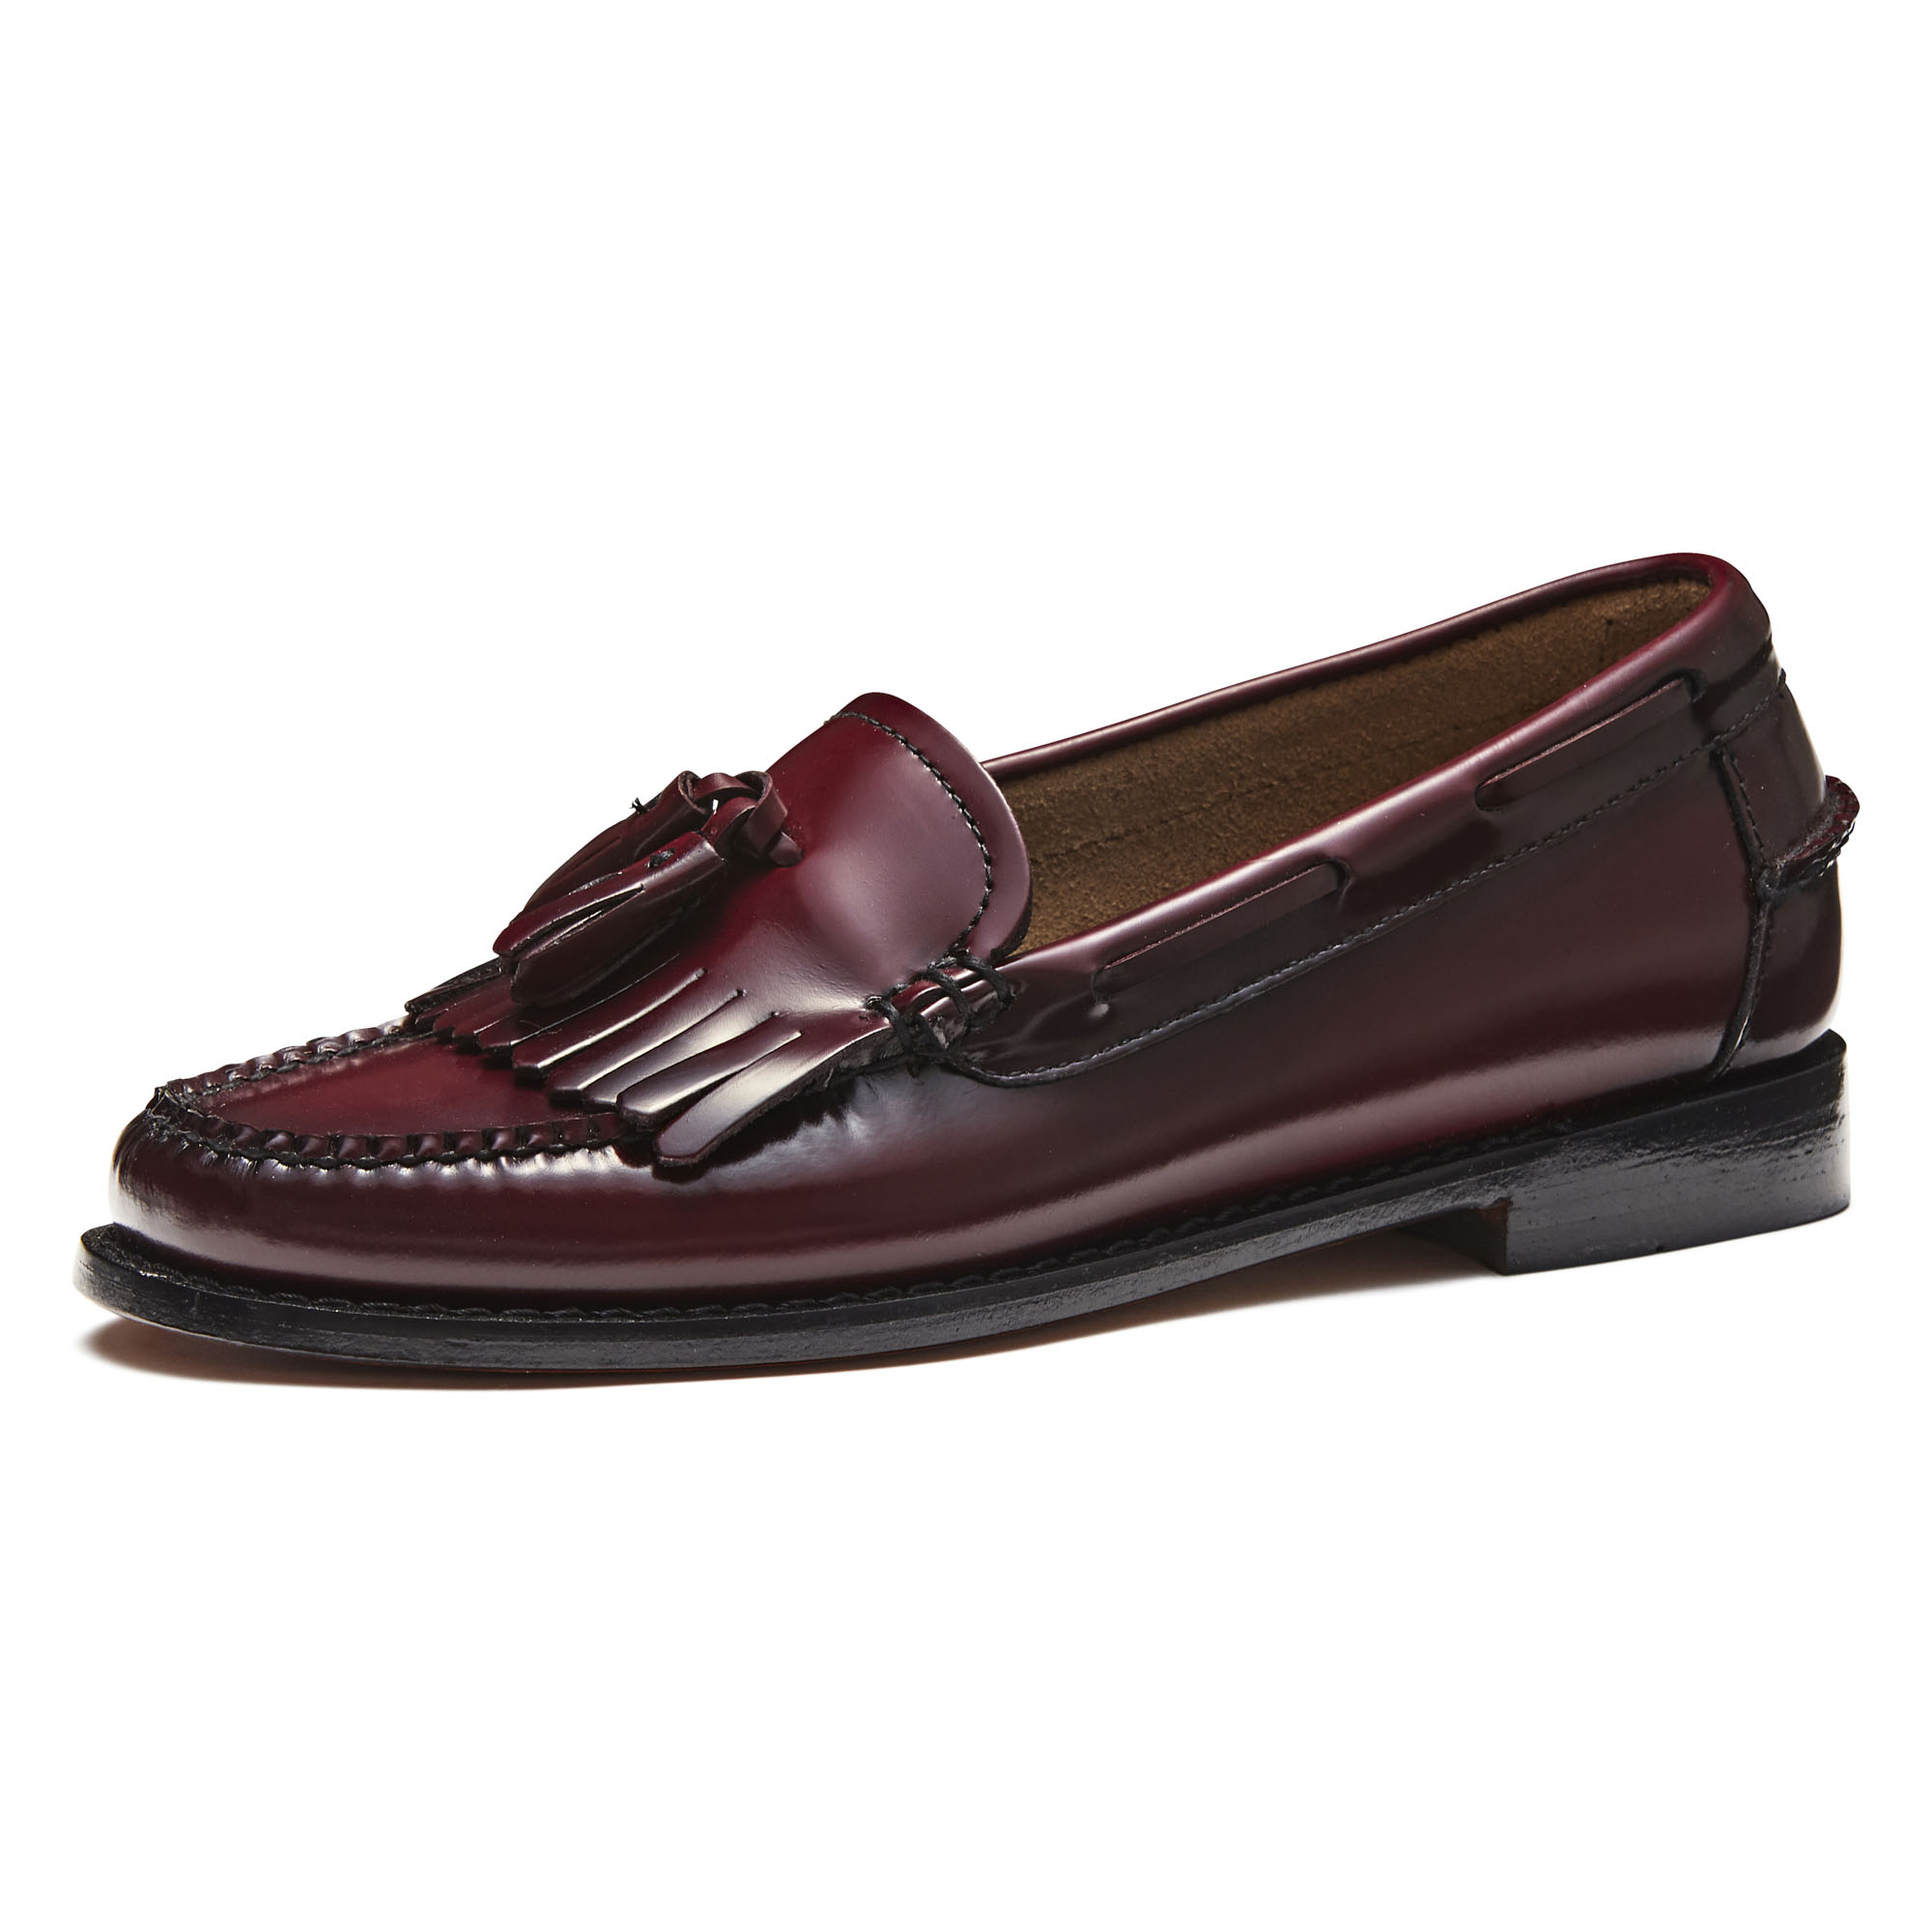 41020 / WINE (LEATHER SOLE)